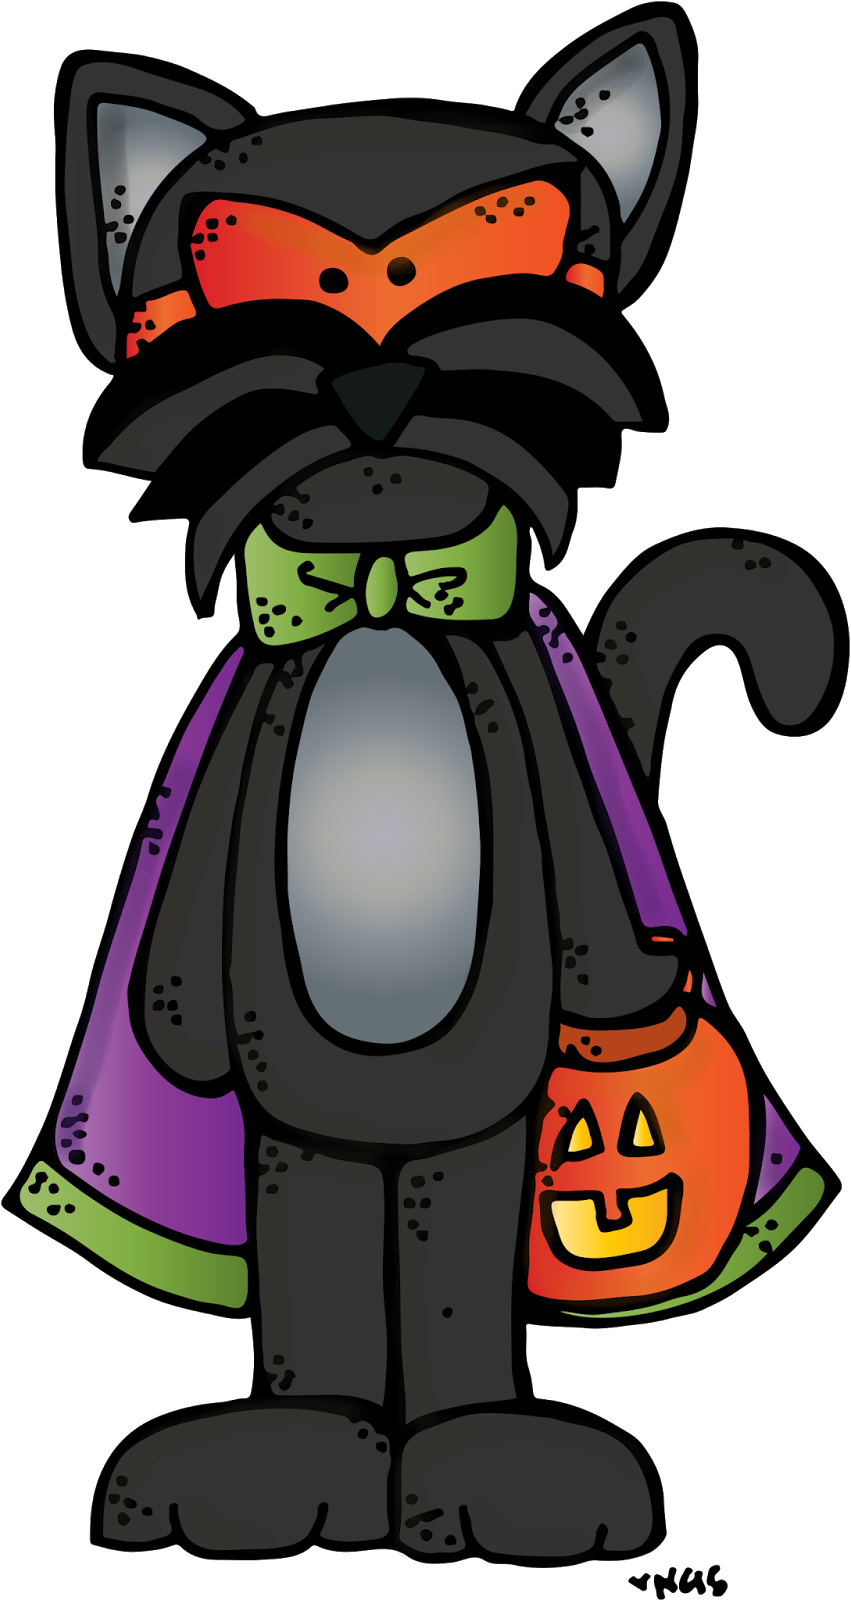 Halloween clipart melonheadz graphic royalty free library MelonHeadz: TpT Clipart Tribe Presents: Franken-Doodle-Stein ... graphic royalty free library